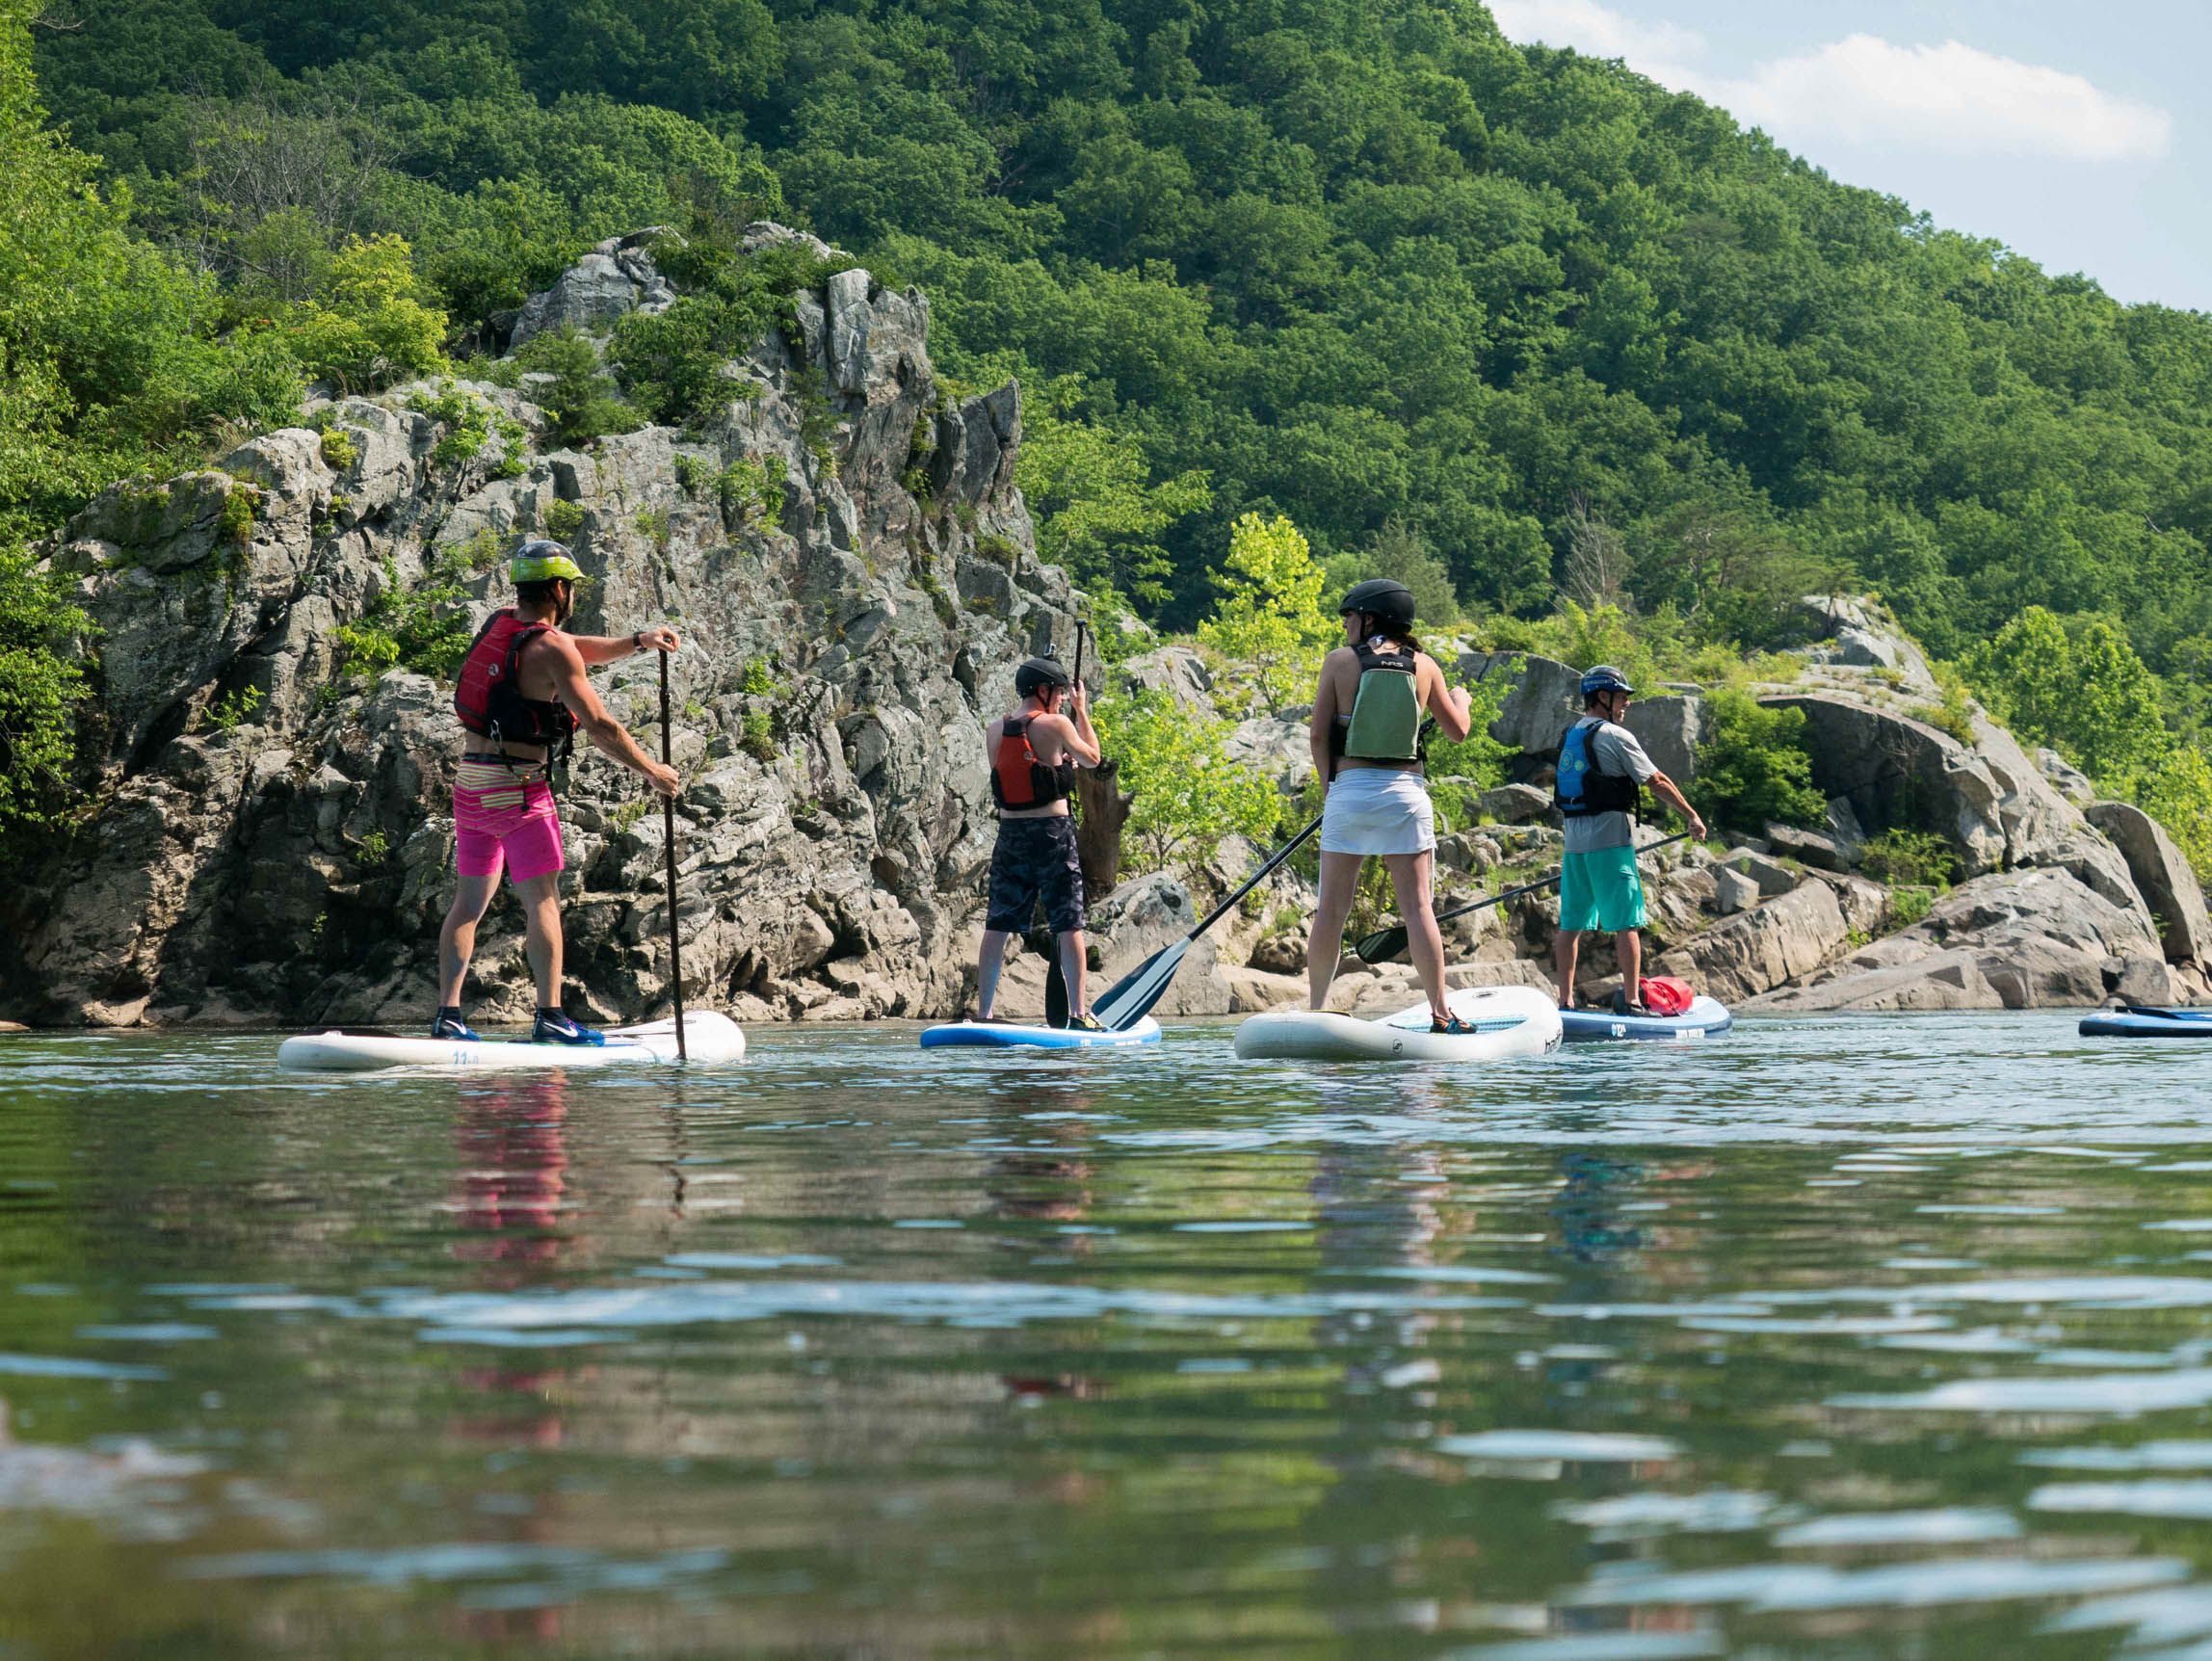 Learn to Stand Up Paddle Board on the Potomac River near Washington DC